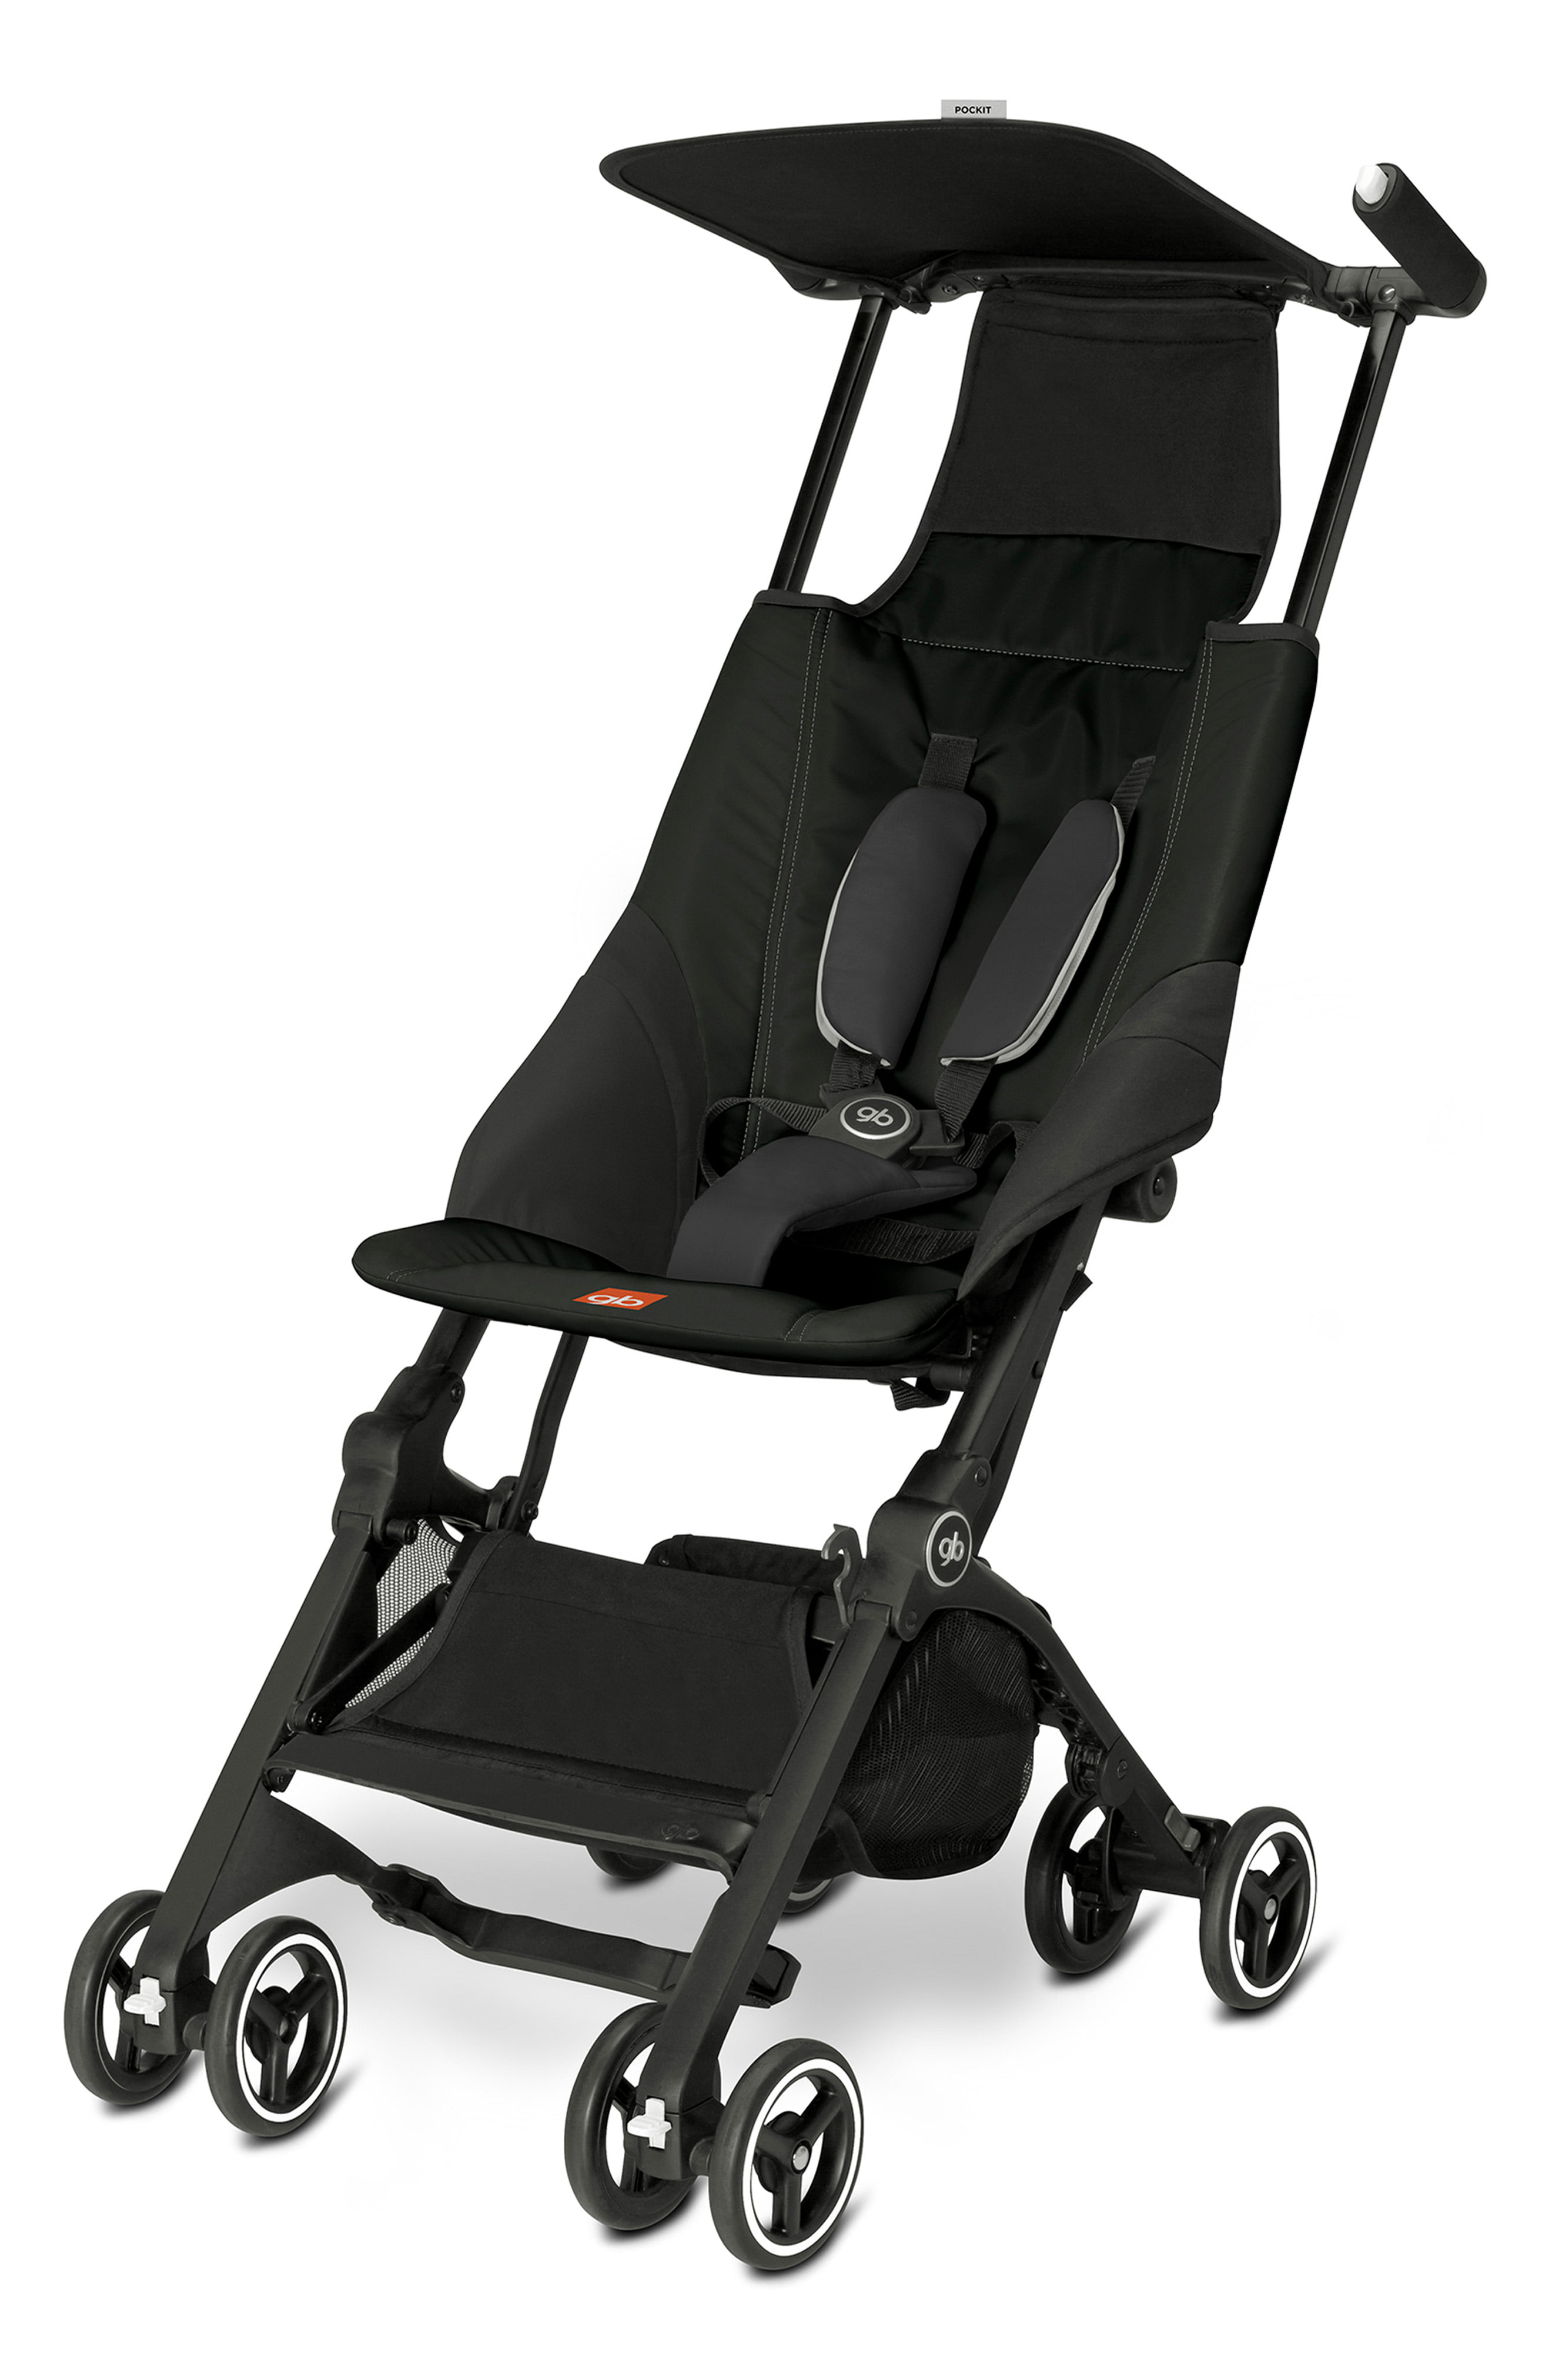 Infant Cybex Gp Pockit Stroller, Size One Size Black